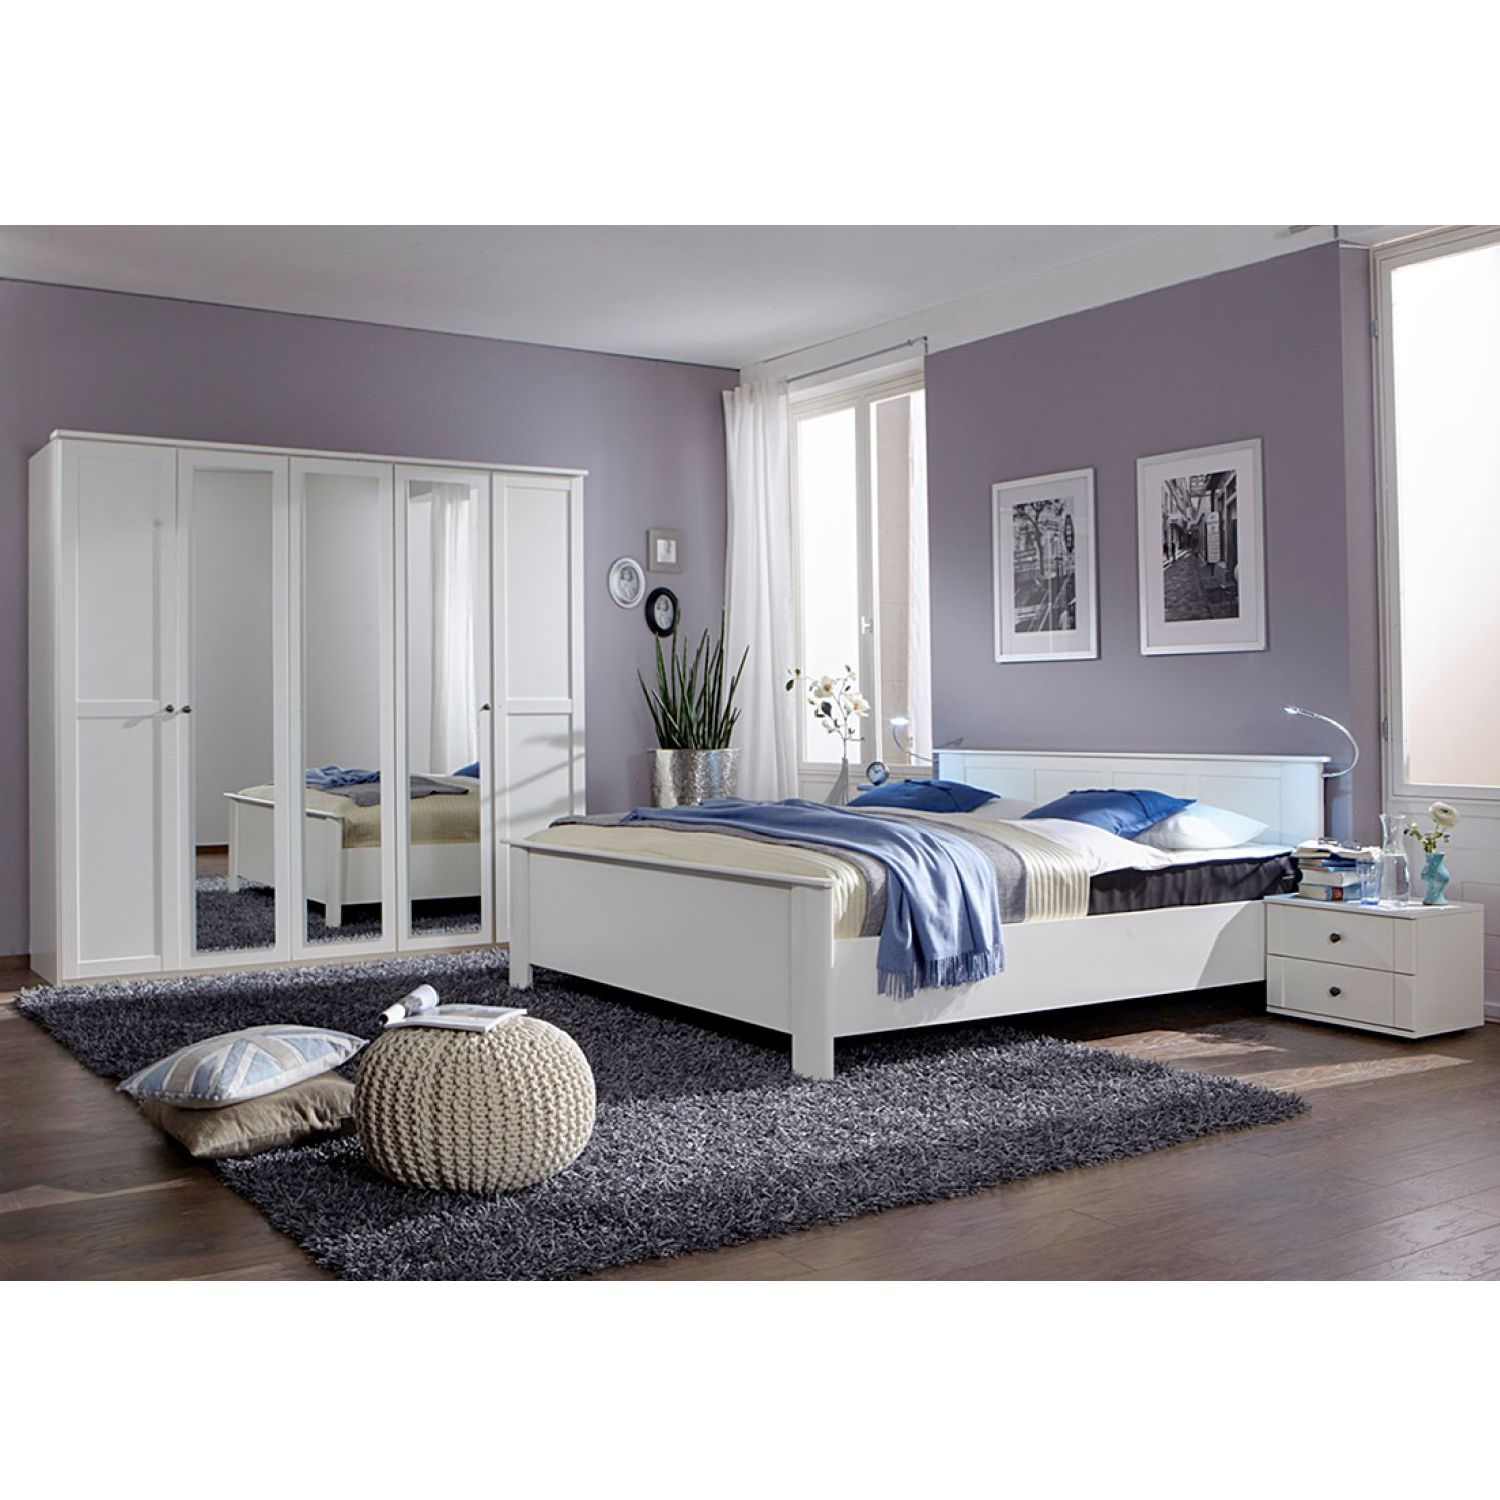 Schlafzimmer Komplett Ratenzahlung But Chambre Adulte Fabulous Rangement Lit But With But